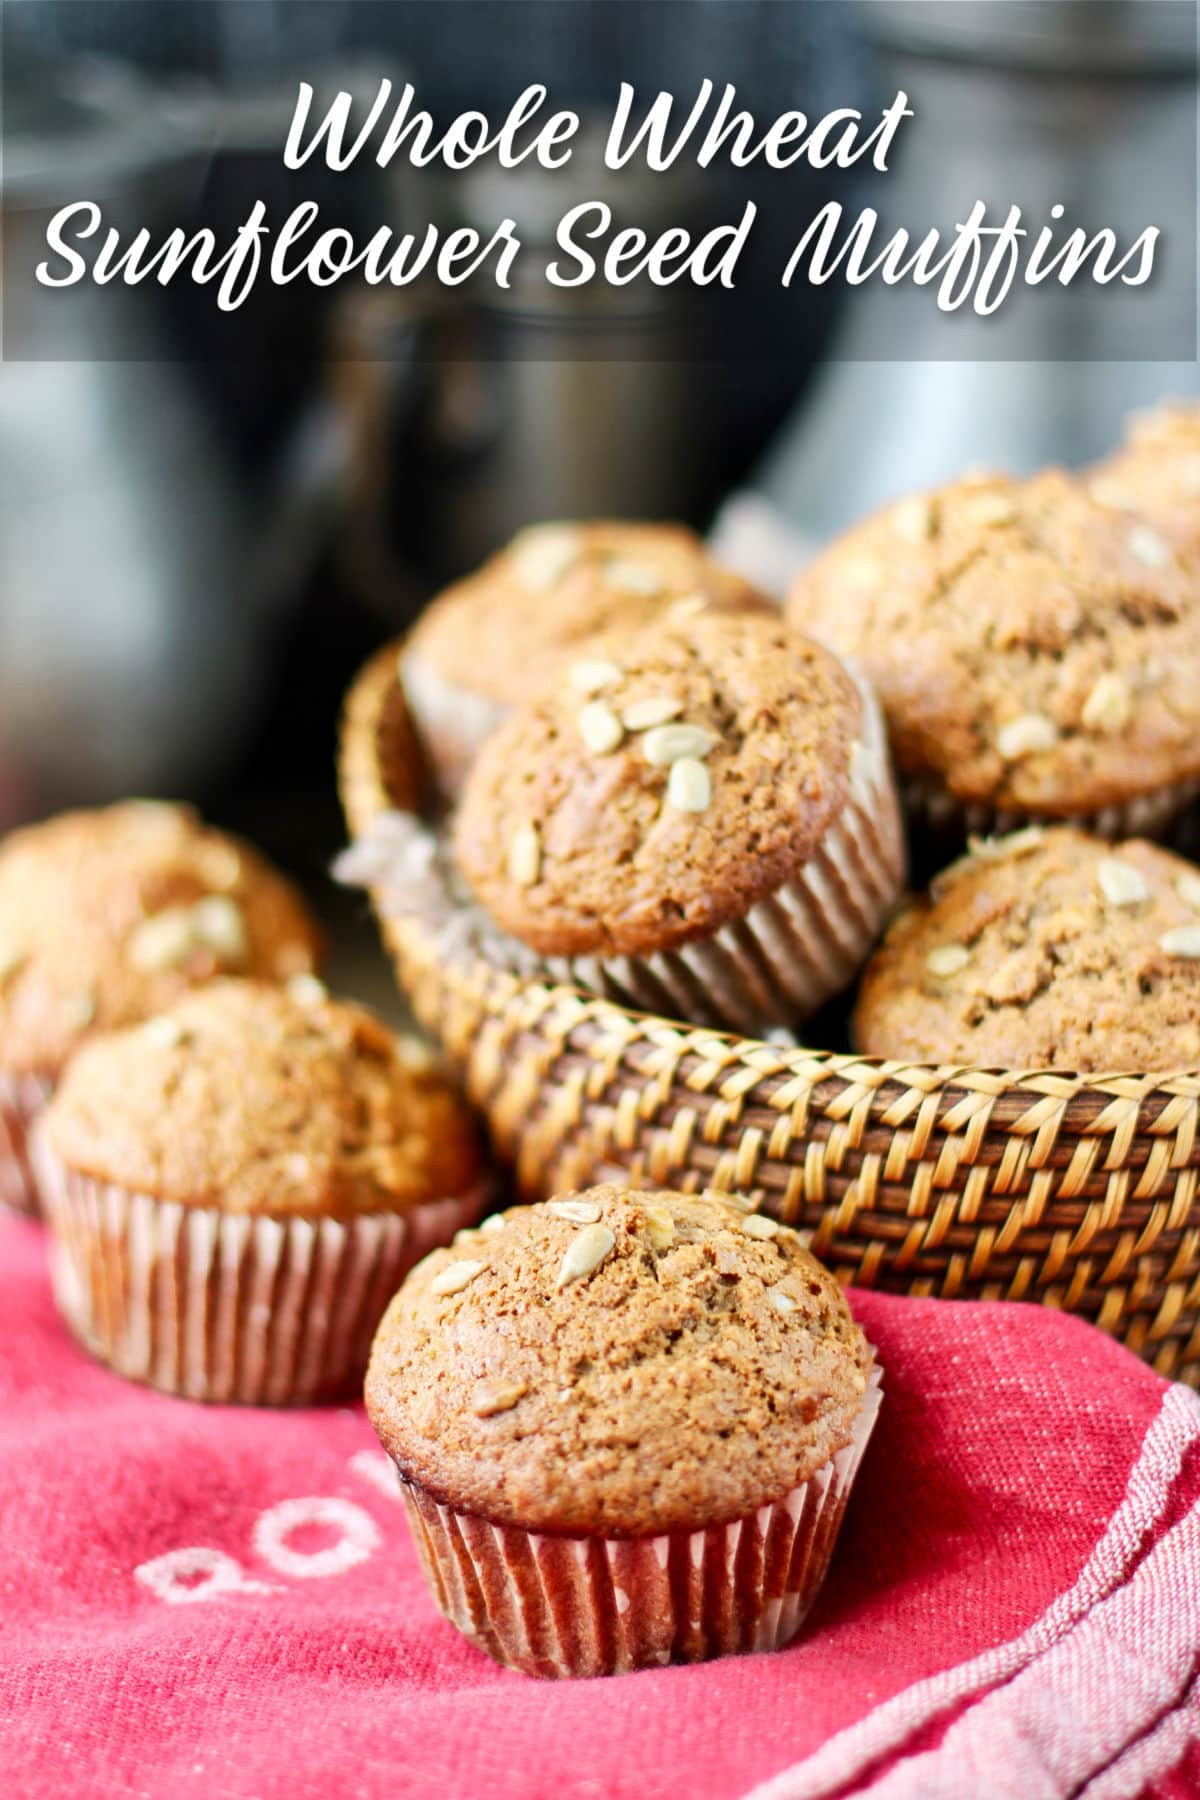 Whole Wheat and Sunflower Seed Muffins.